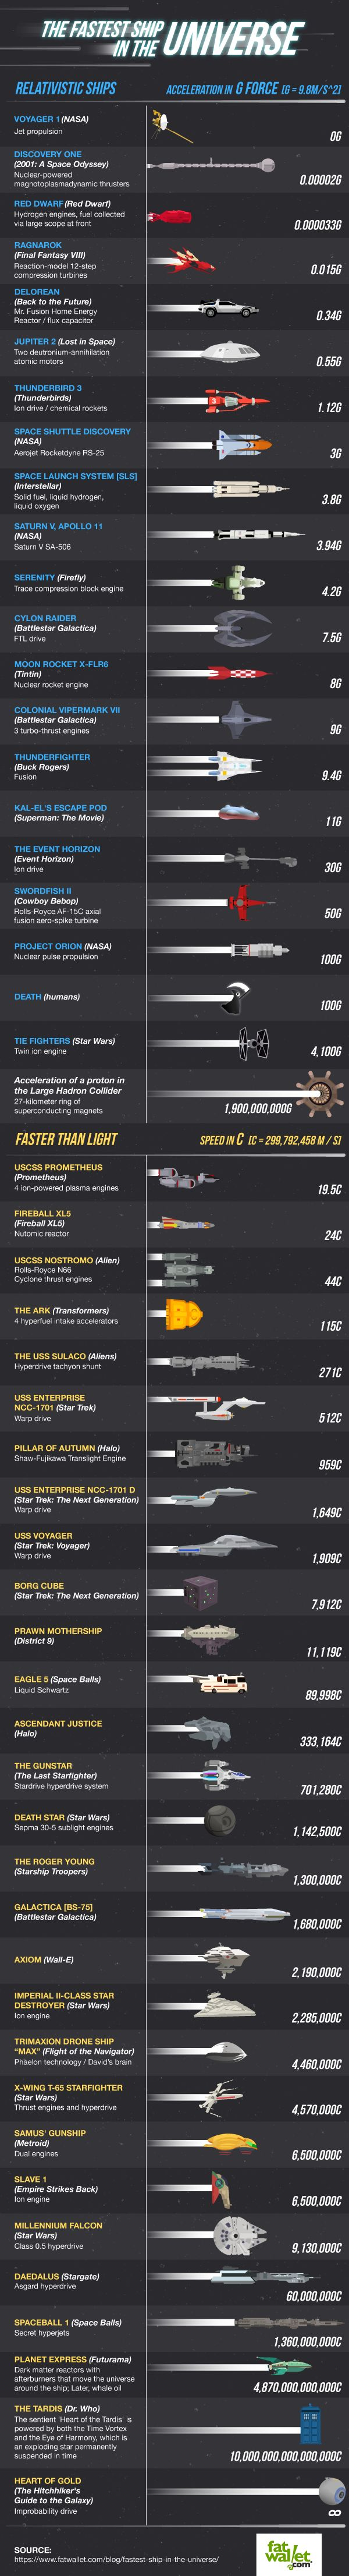 How Sci-Fi ships stack up. I refuse to believe the Millenium Falcon is faster than the Enterprise. Sorry.